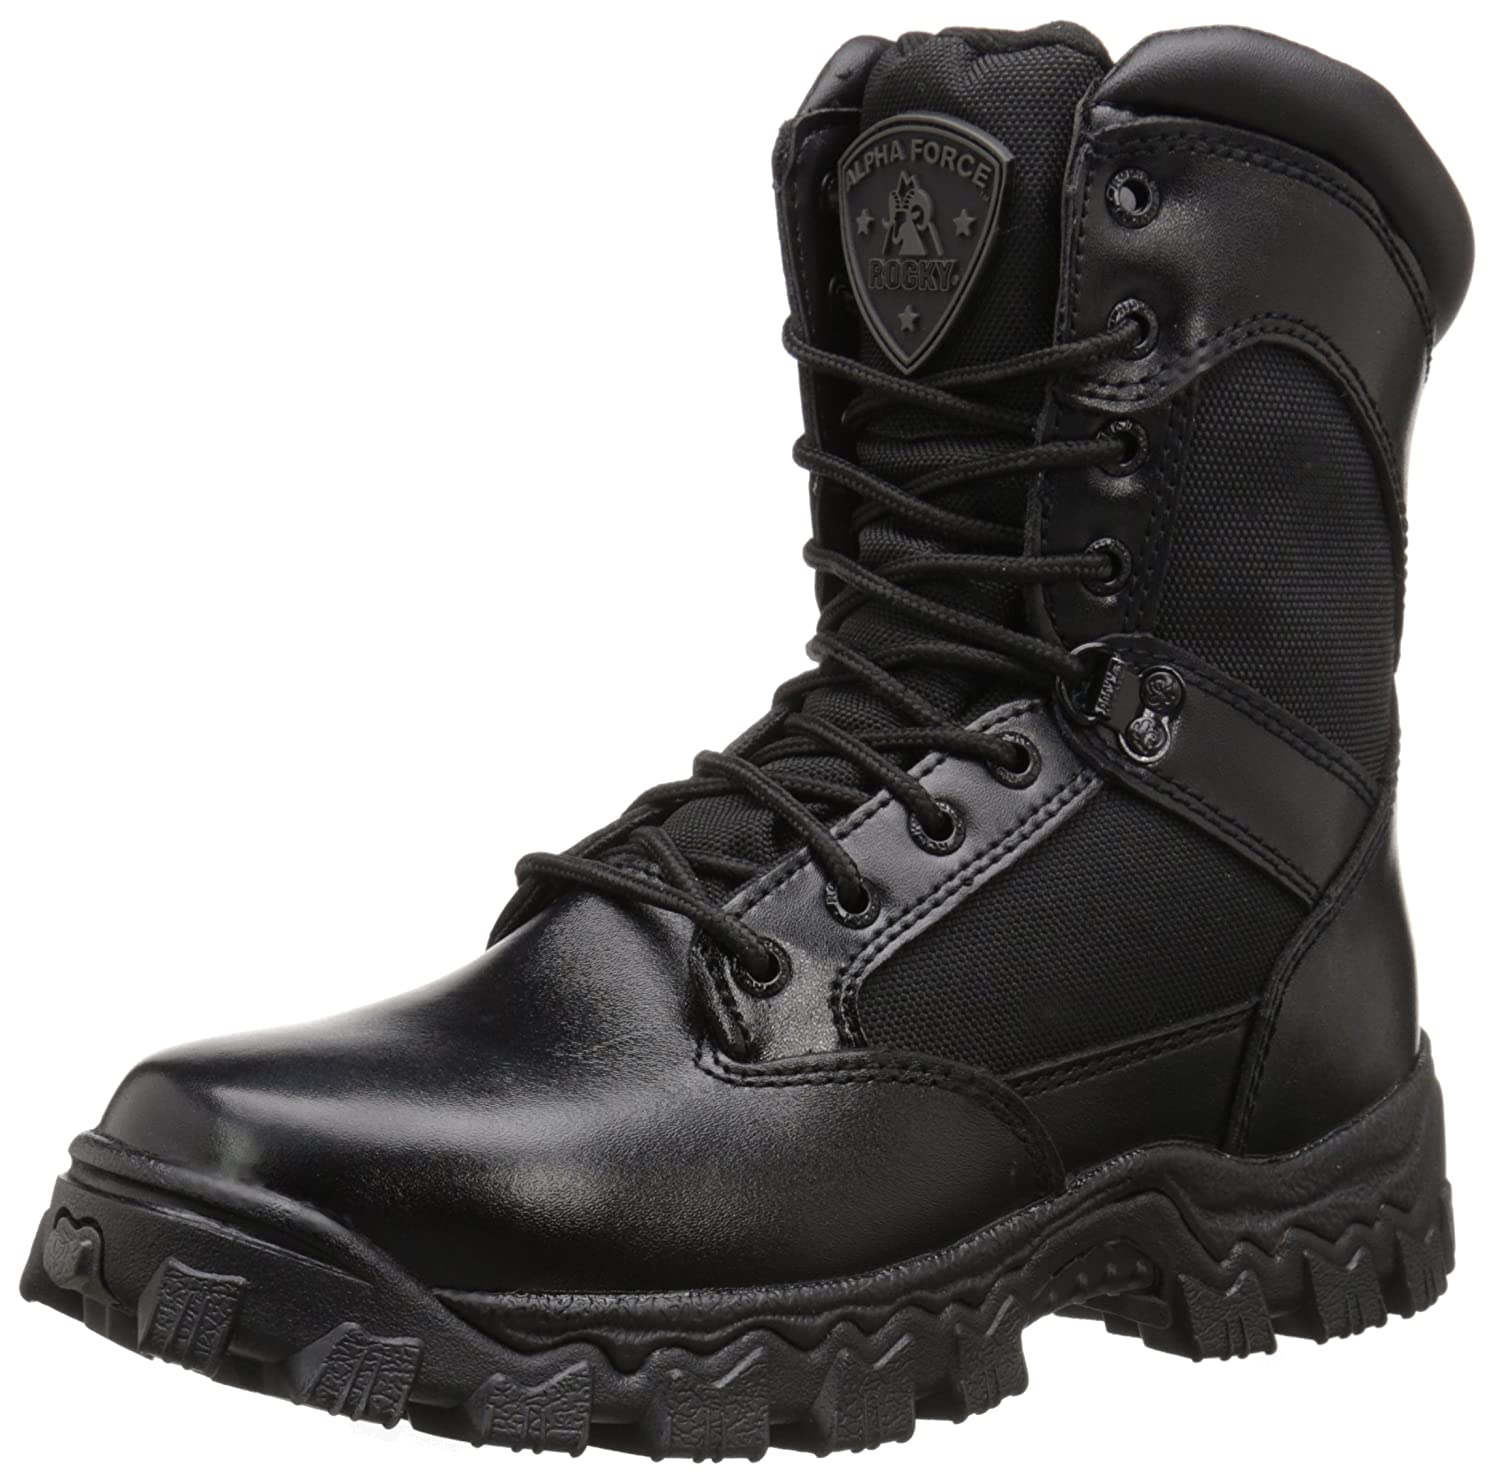 472e43bb463 Rocky AlphaForce Zipper Waterproof Duty Boot Black